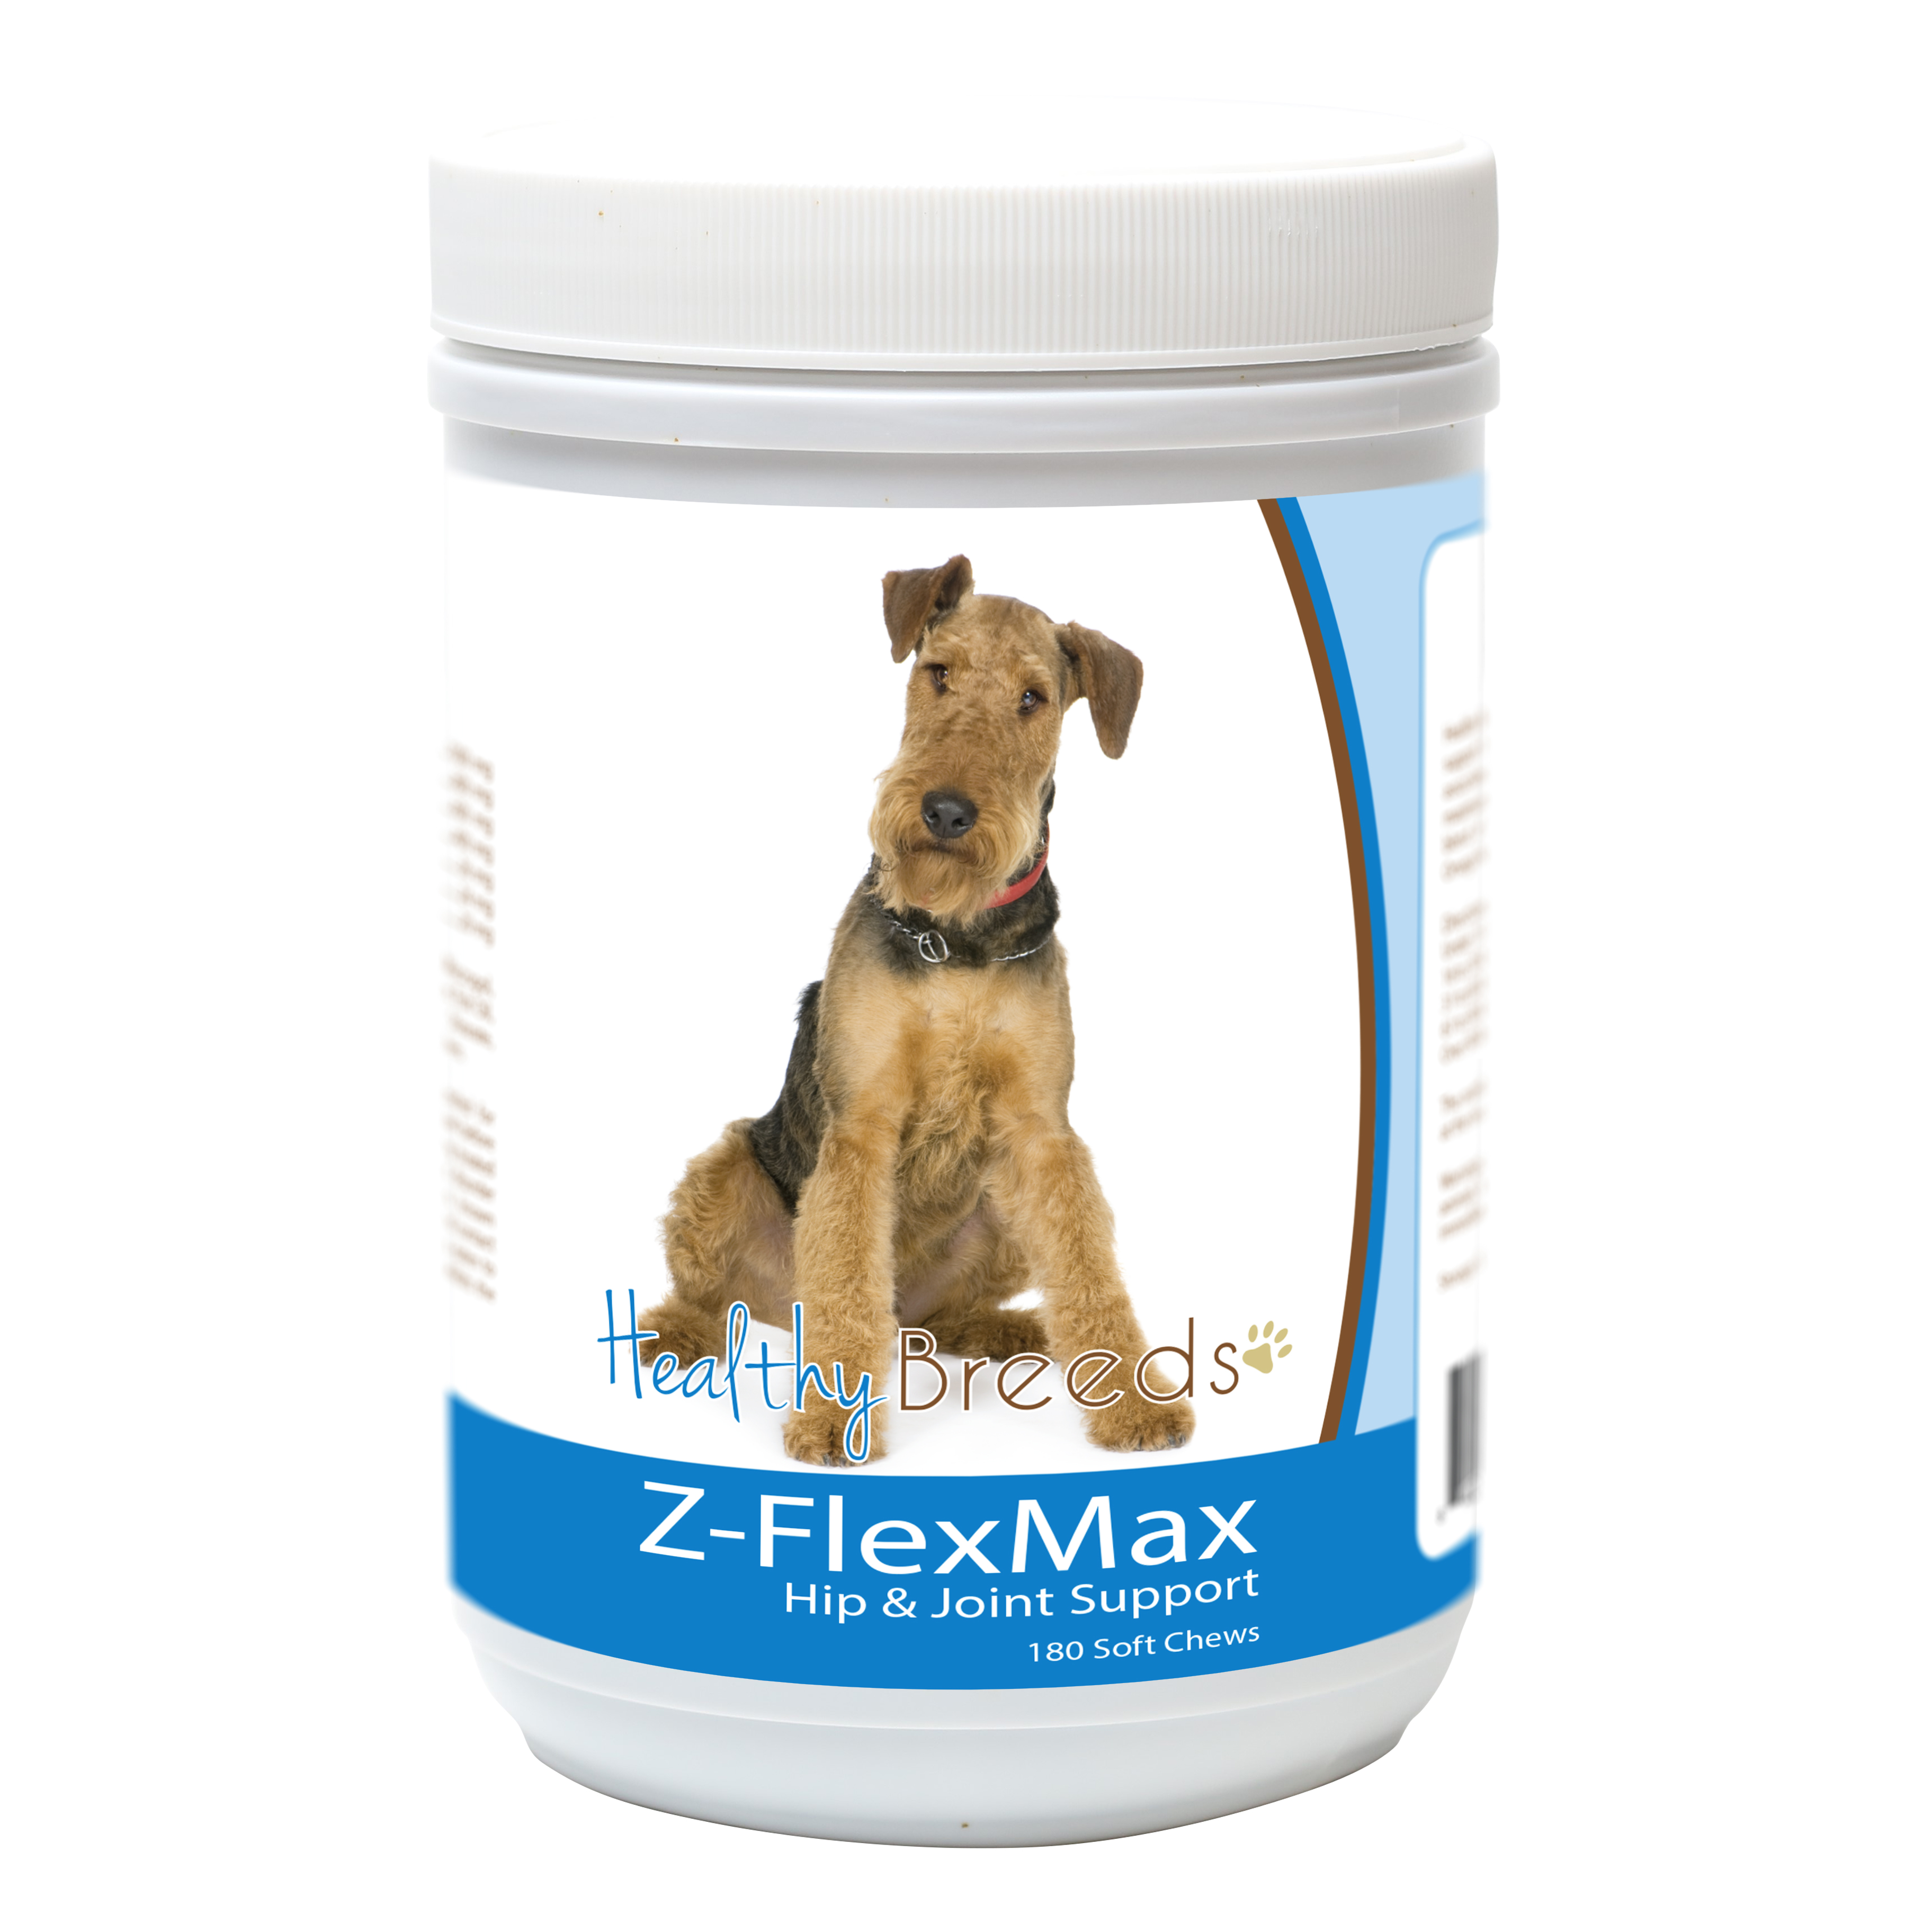 Healthy Breeds Airedale Terrier Z-Flex Max Dog Hip and Joint Support 180 Count